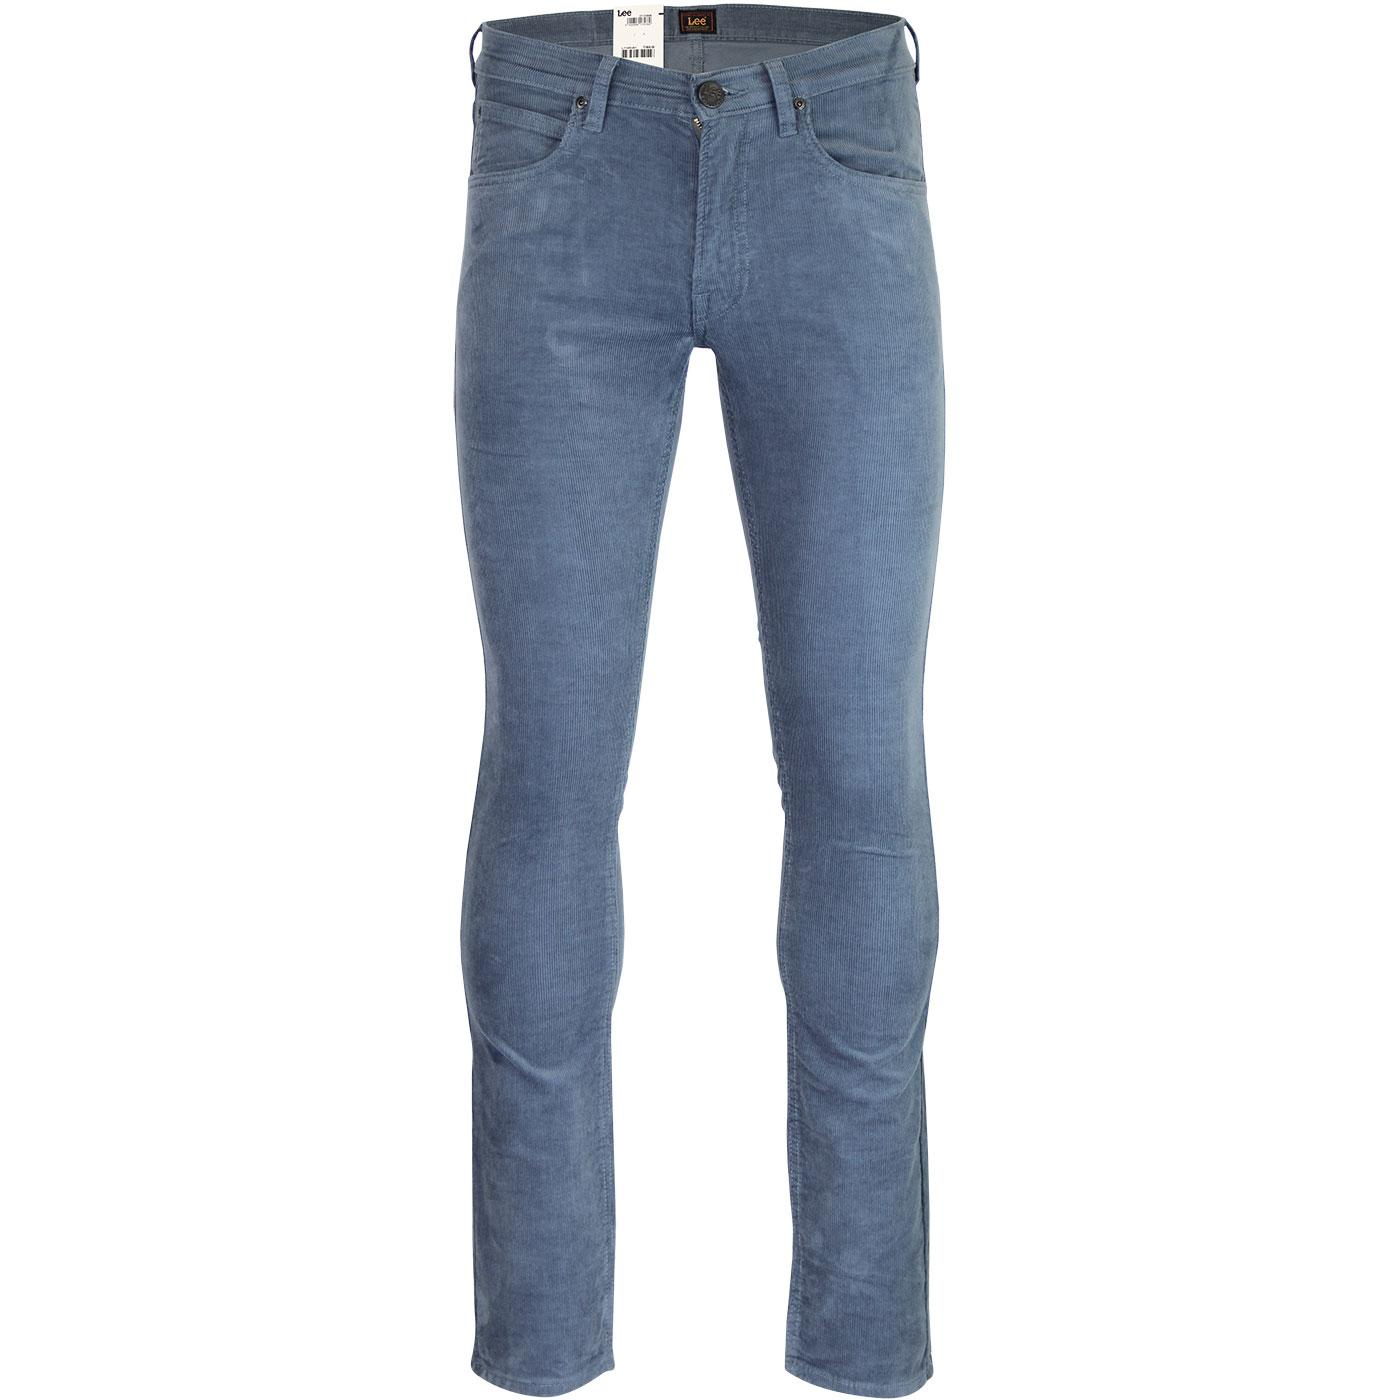 Luke LEE Mod Slim Tapered Cord Jeans (Bering Sea)